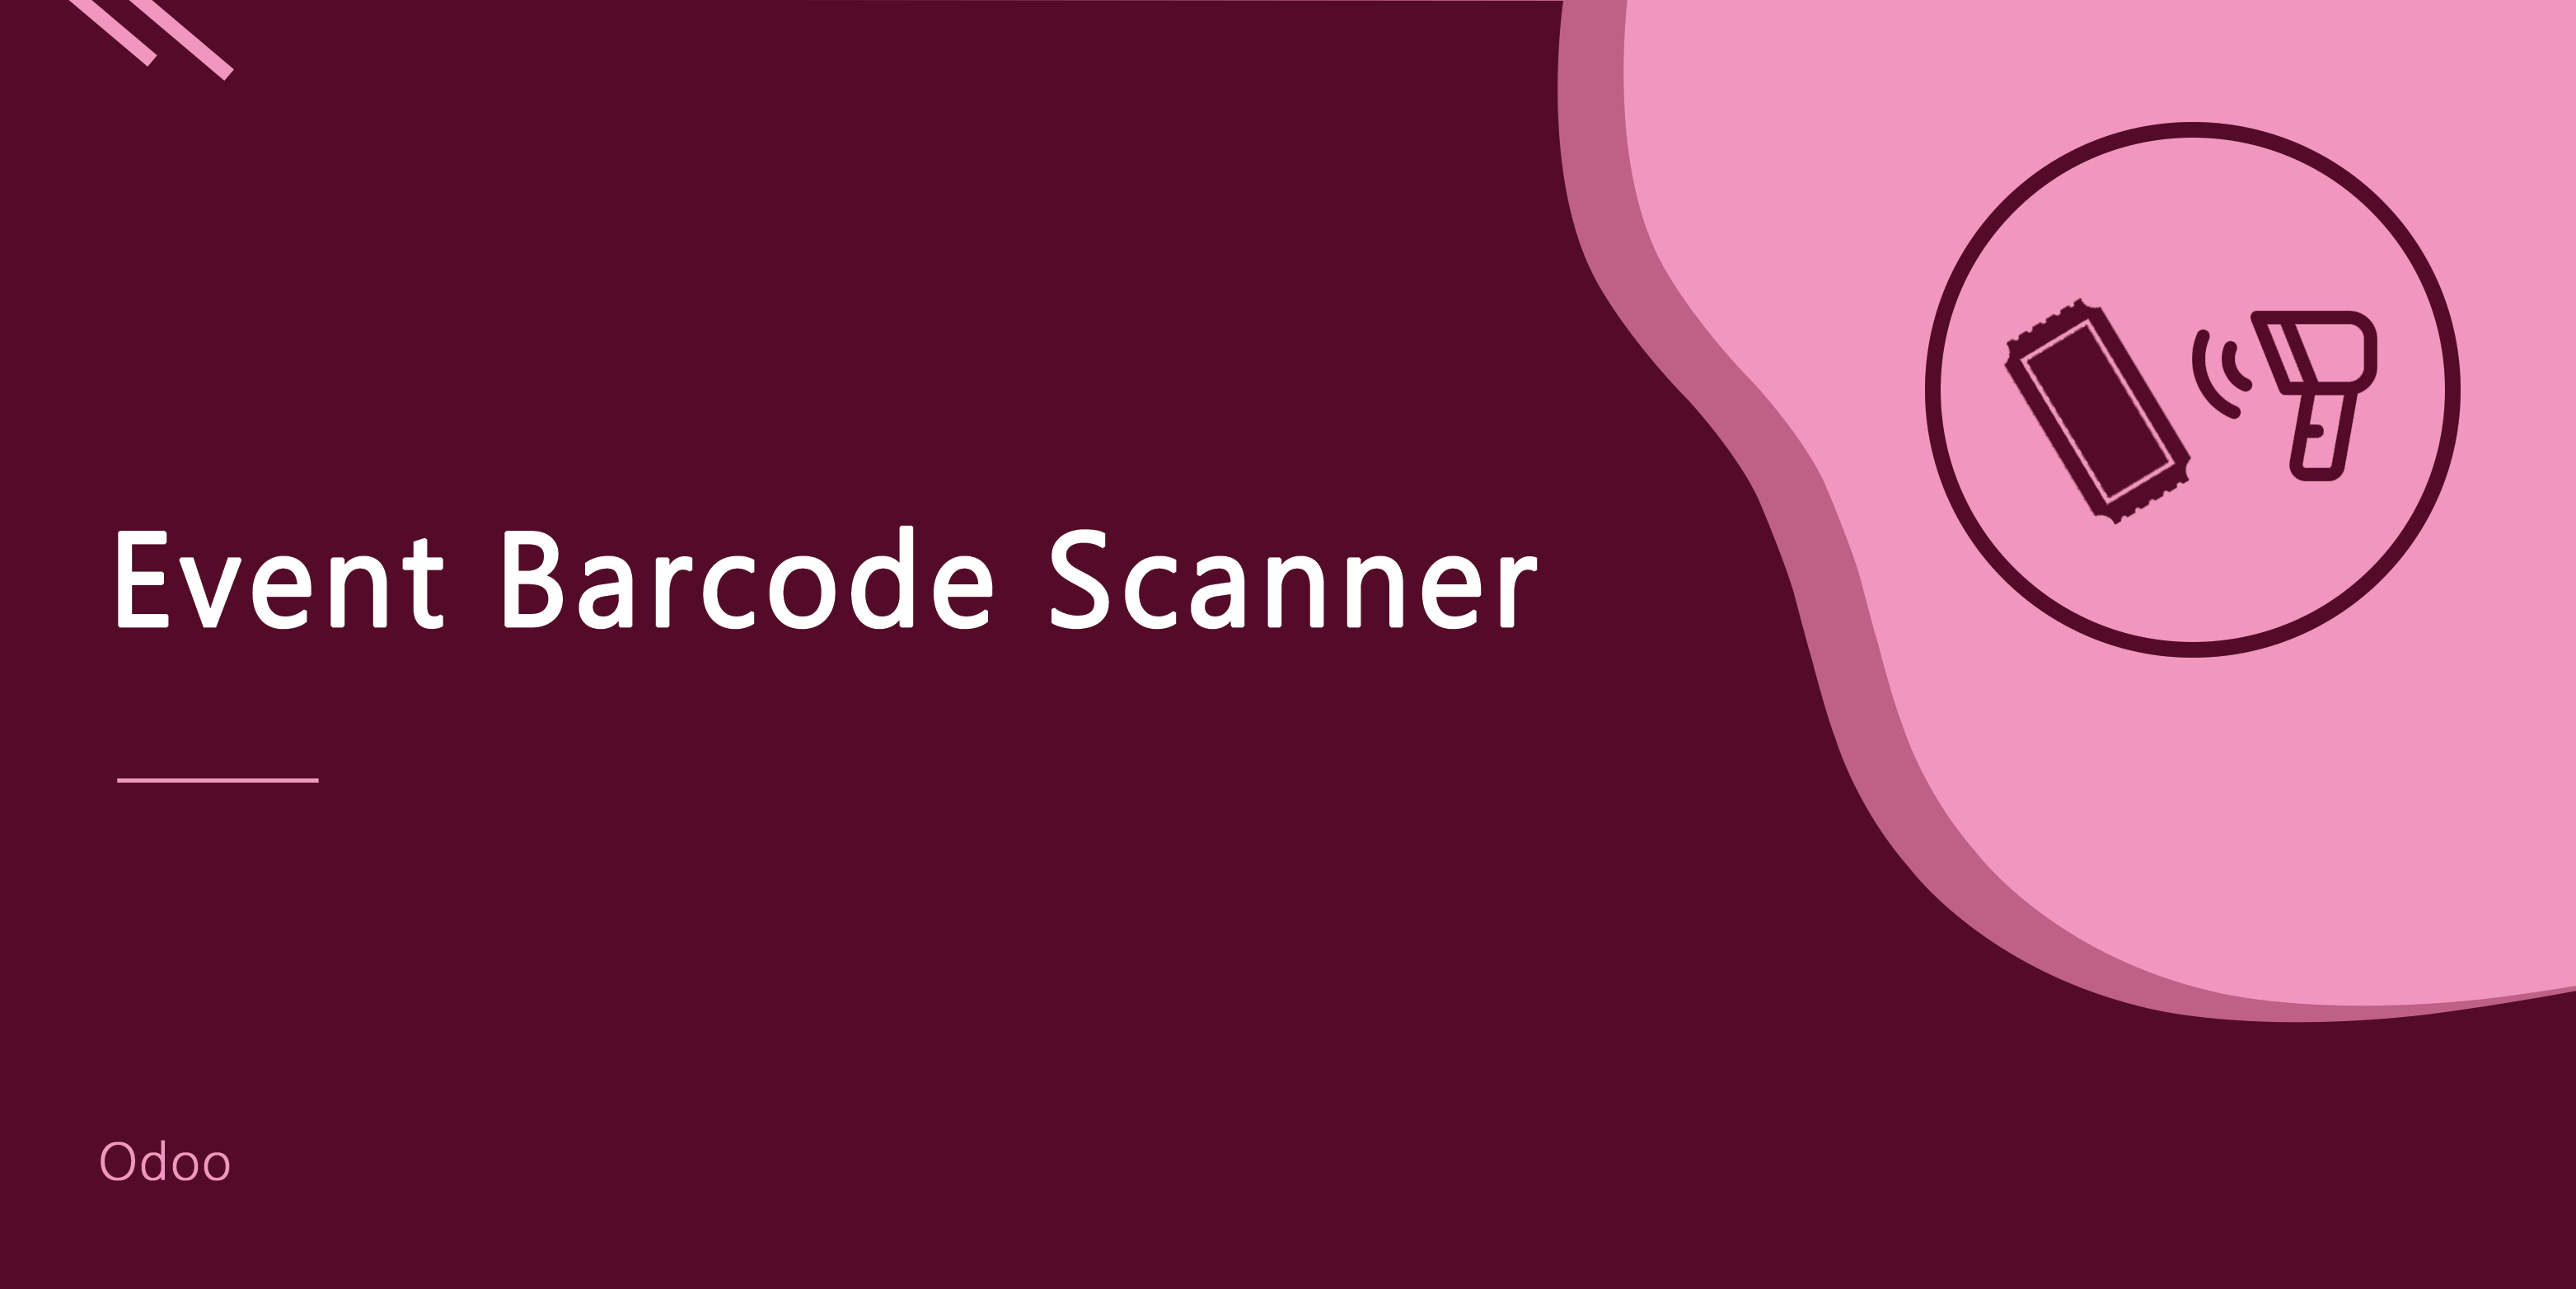 Event Barcode Scanner